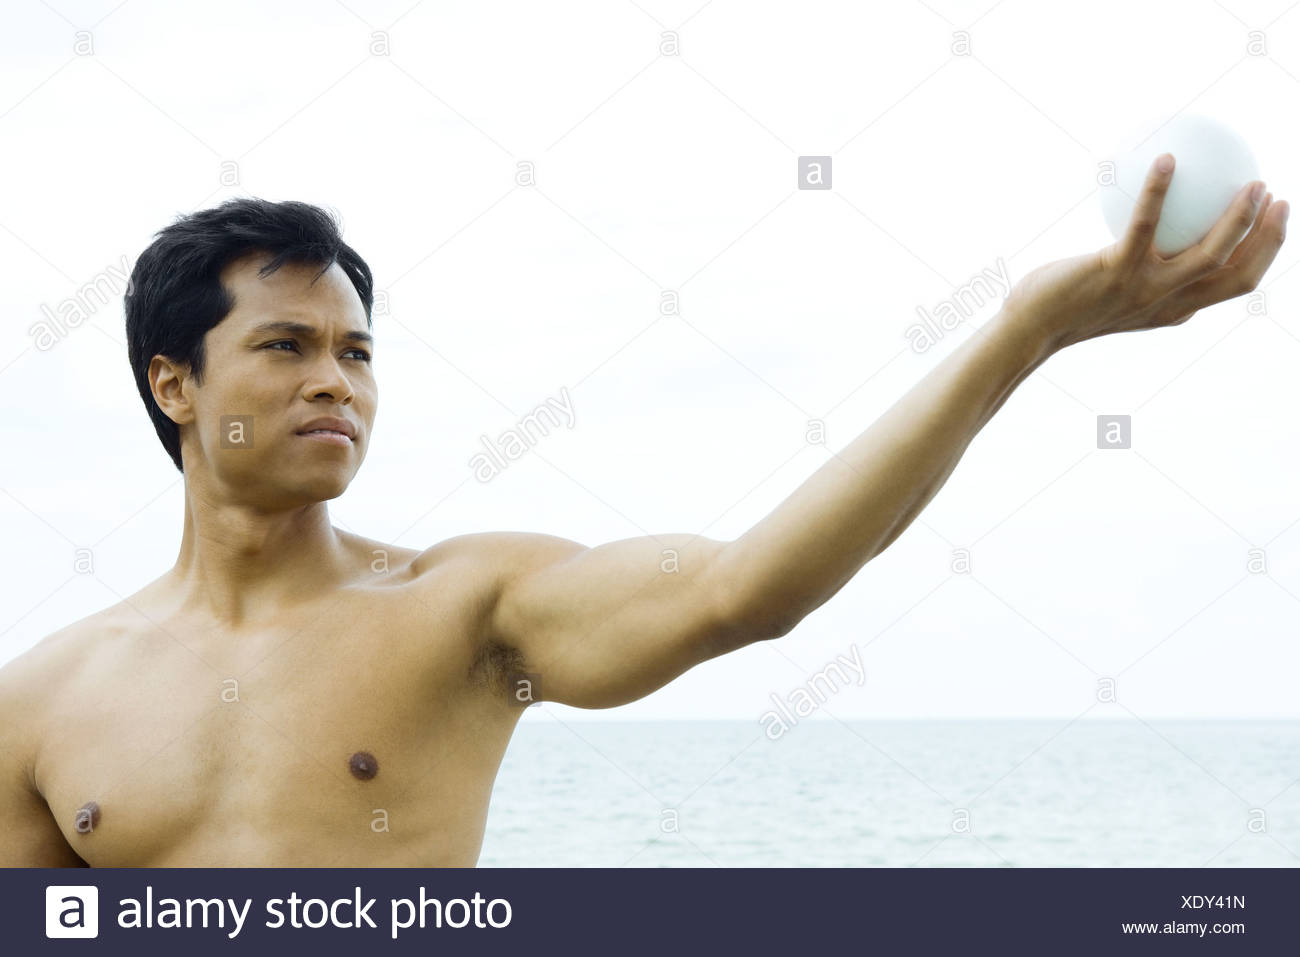 Man at the beach with arm raised, looking at ball in hand, close-up - Stock Image